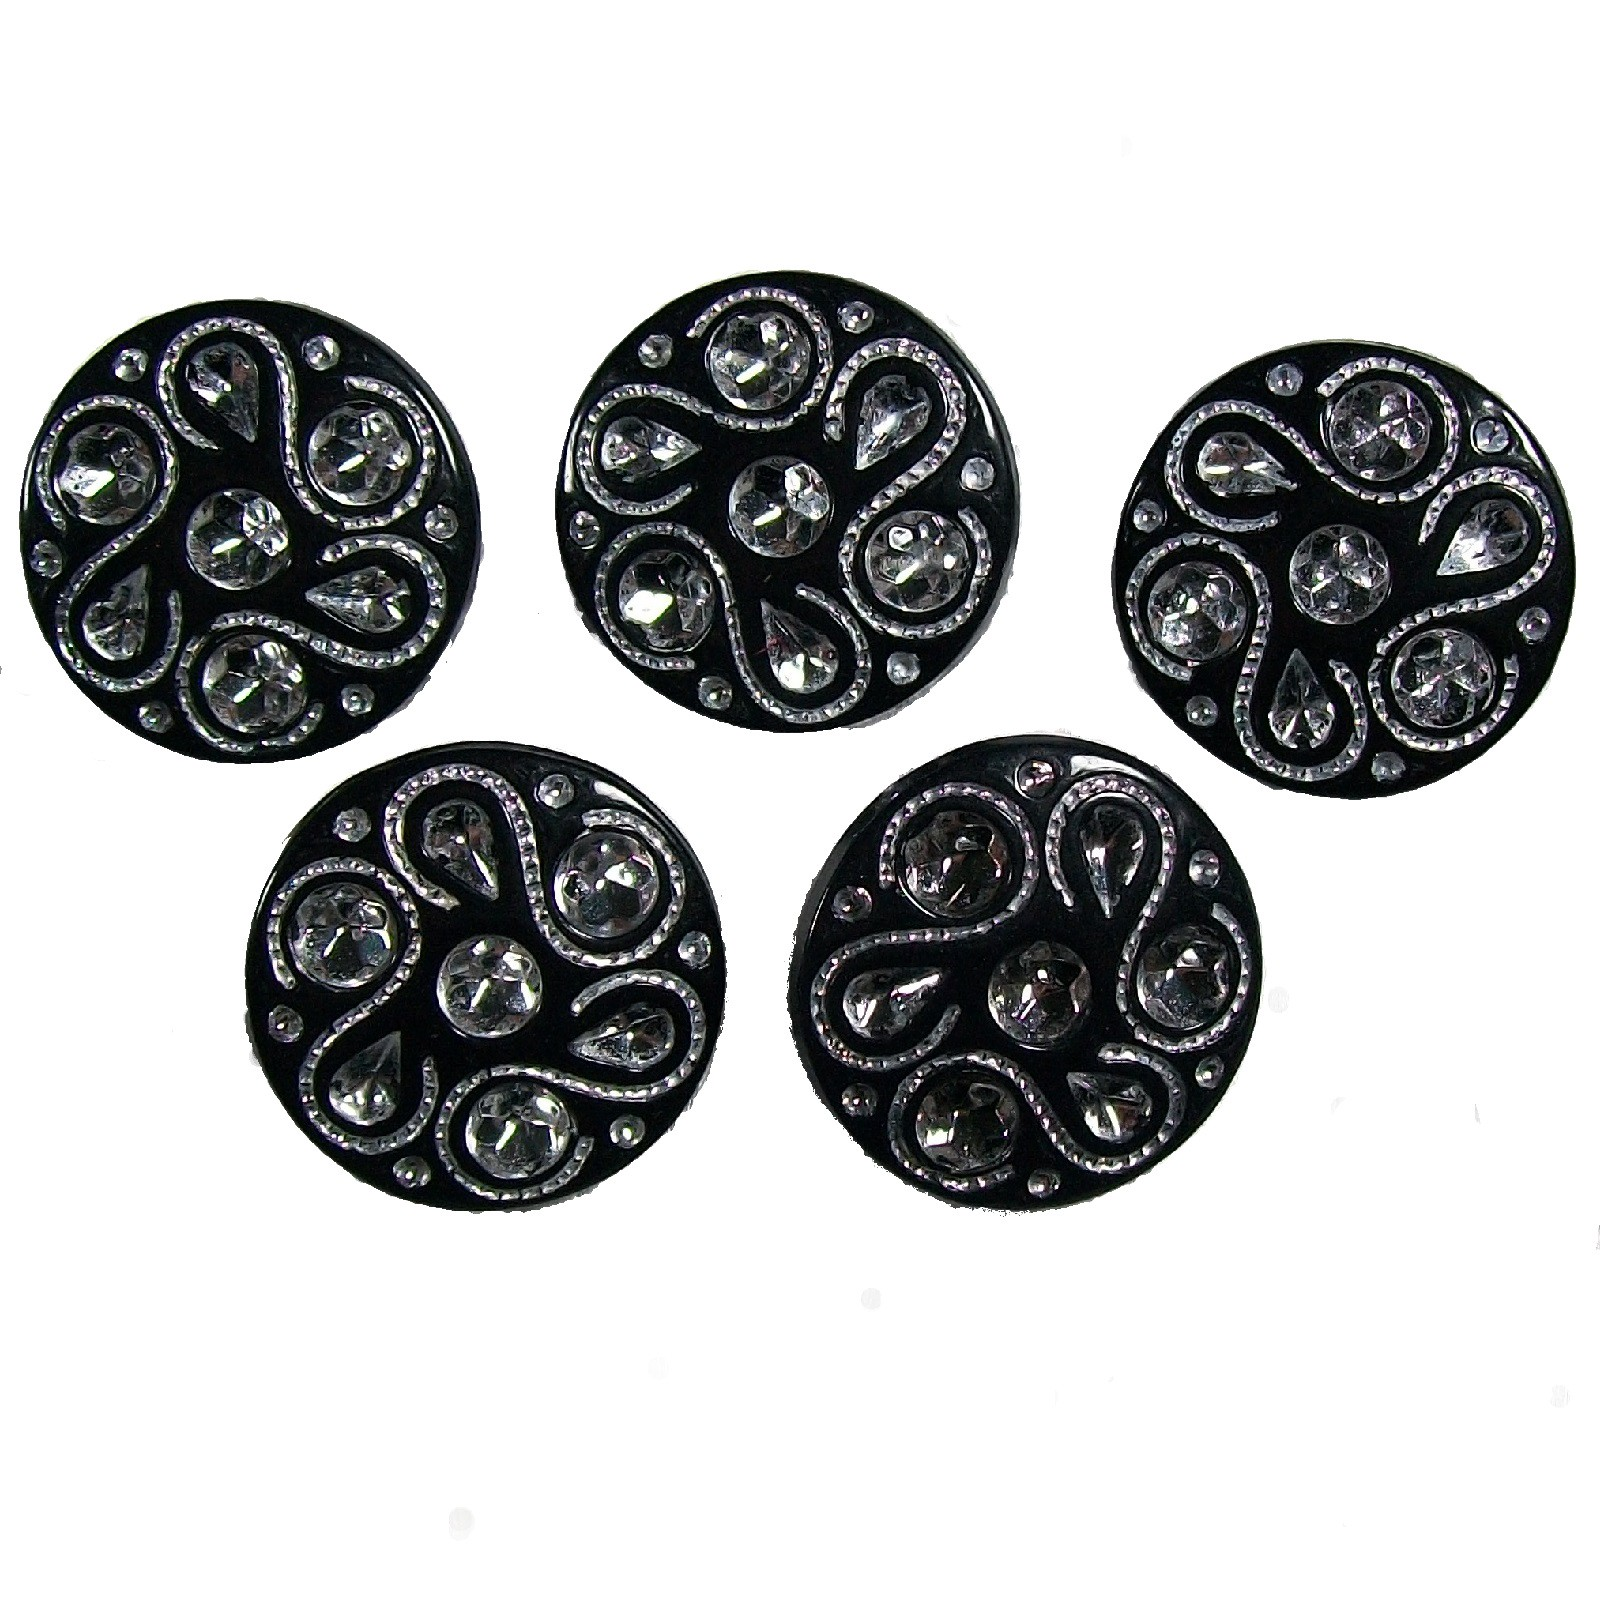 Black Diamante Art Deco Style Buttons 17mm Round Pack of 5